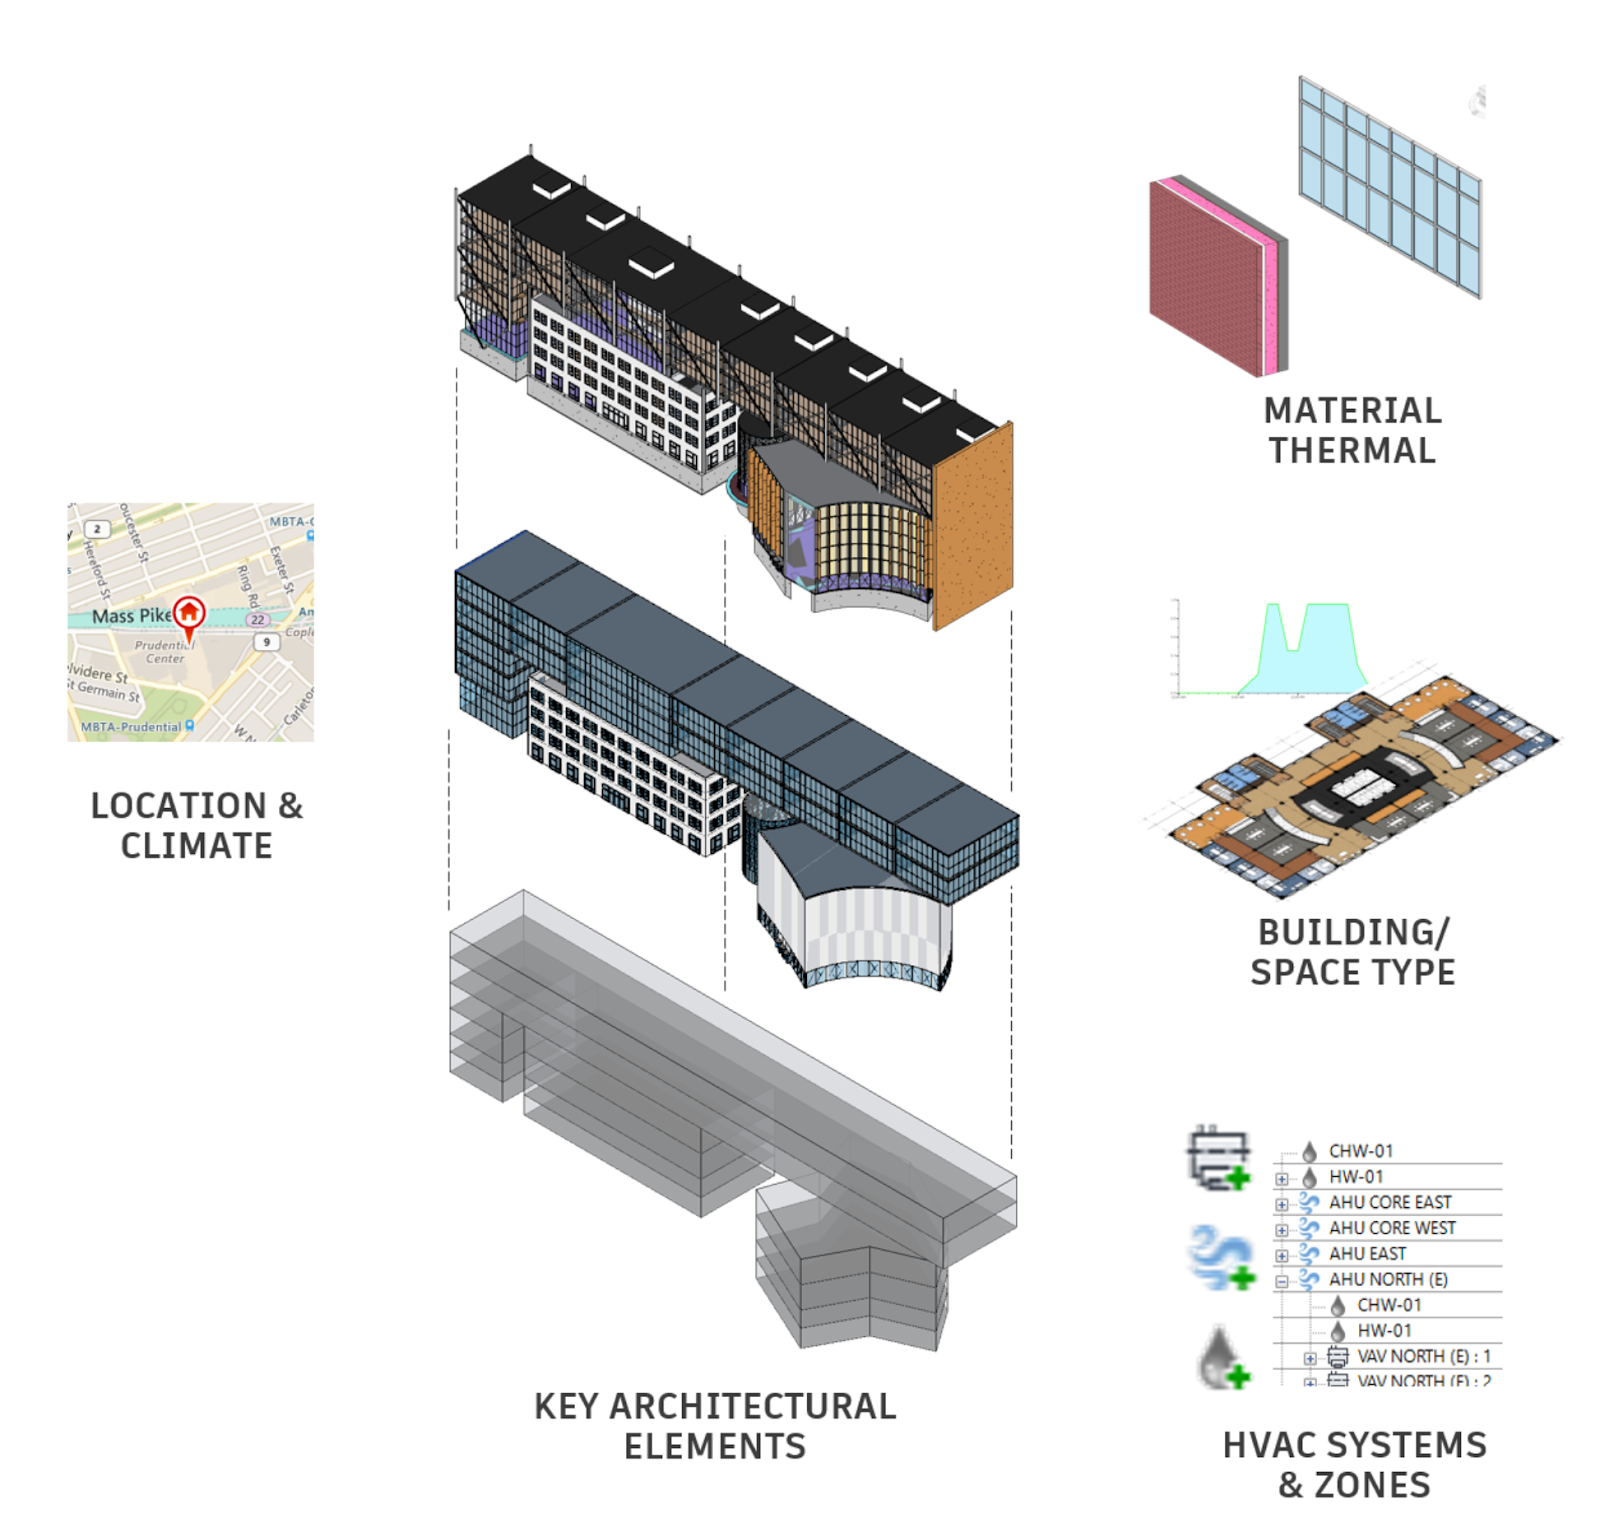 BIM Chapters: Revit 2020 1 Update Released - What's New?